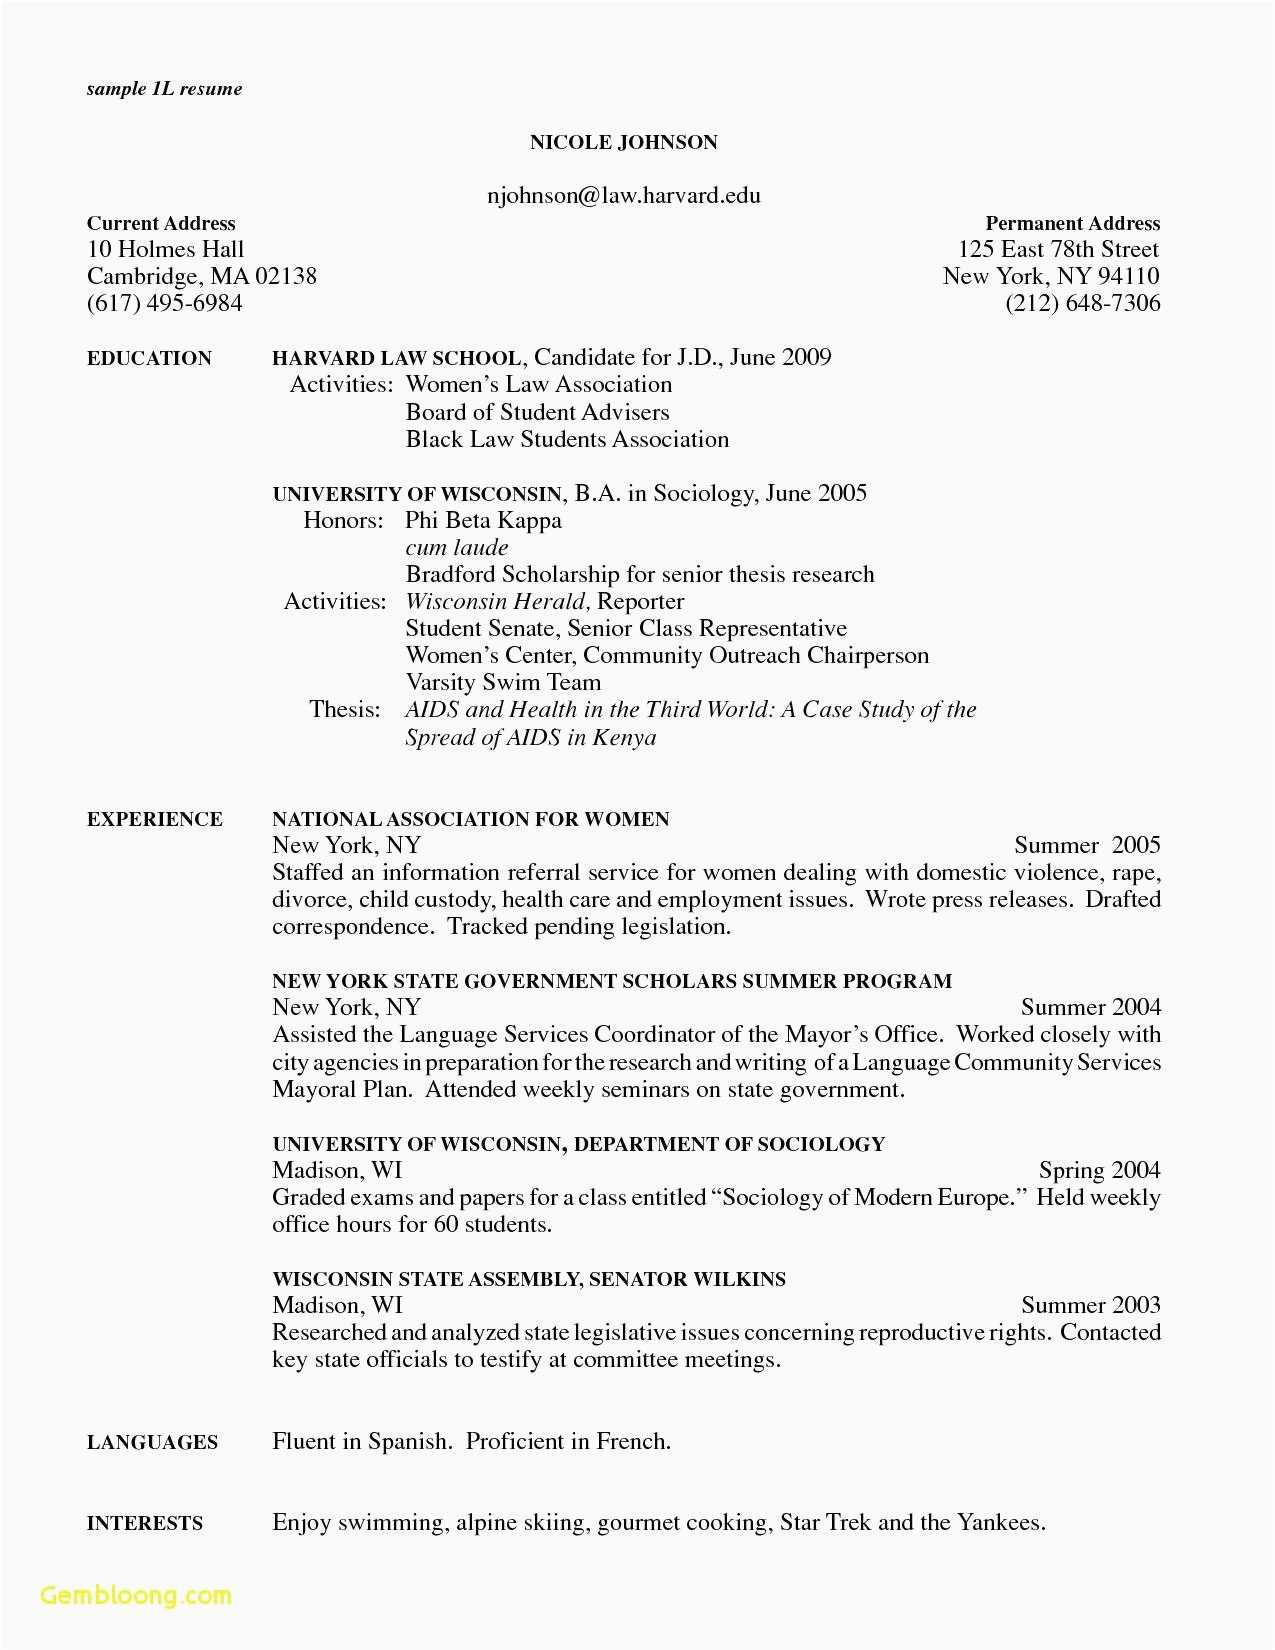 Law School Resume Template Word - Cancellation Policy Template 2018 Legal Resume Template Best Law